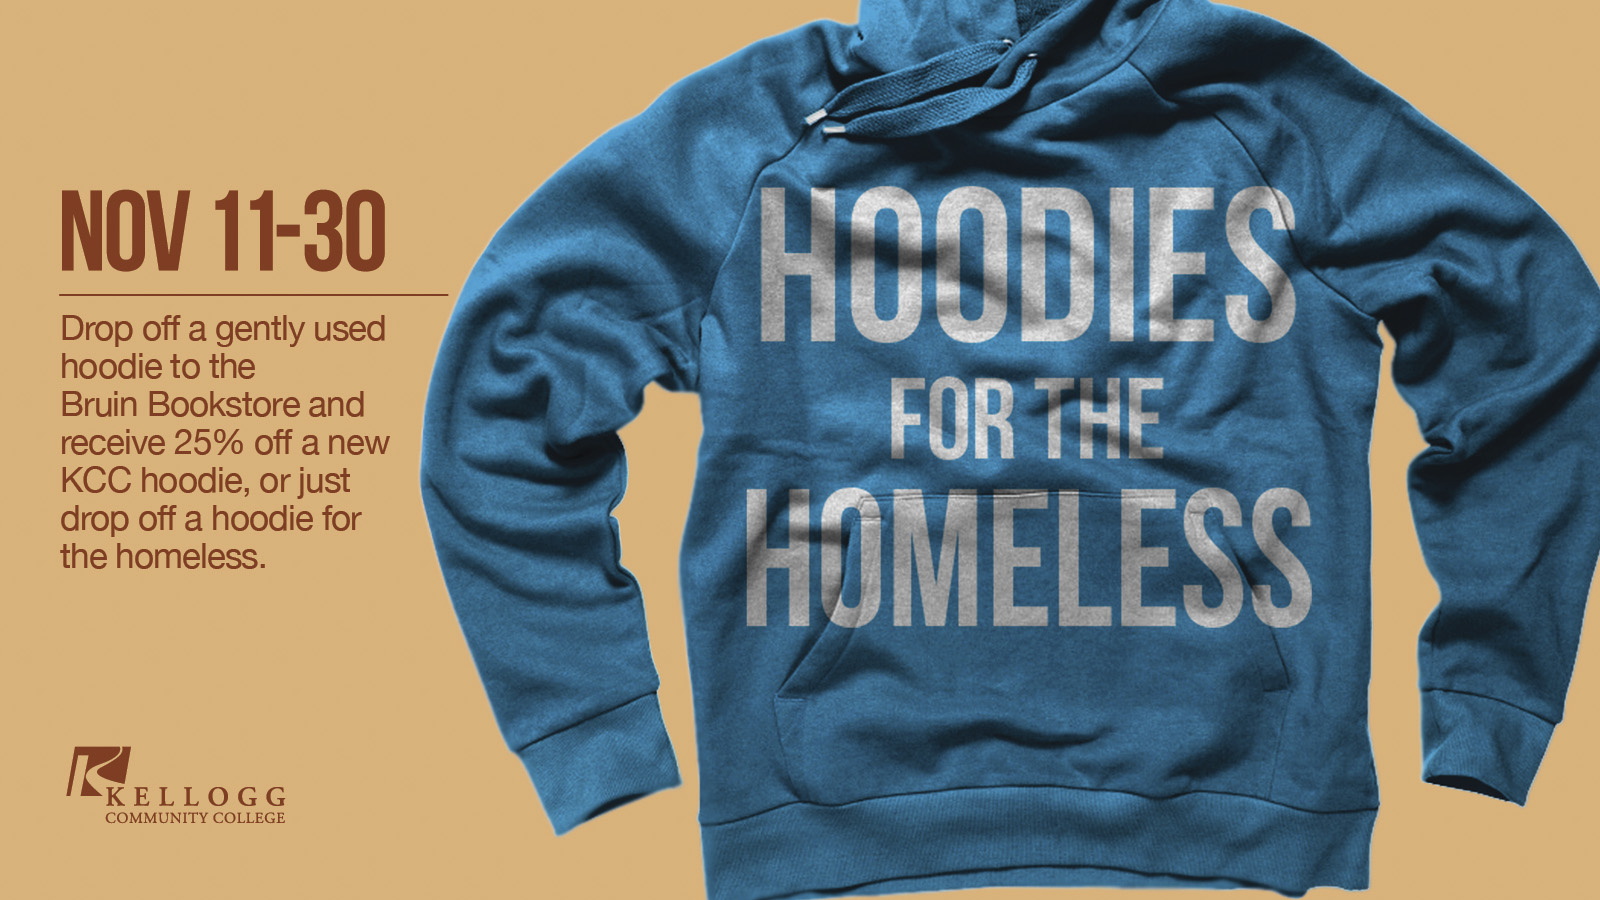 Graphic slide with a hooded sweatshirt on it promoting the Bruin Bookstore's Hoodies for the Homeless campaign